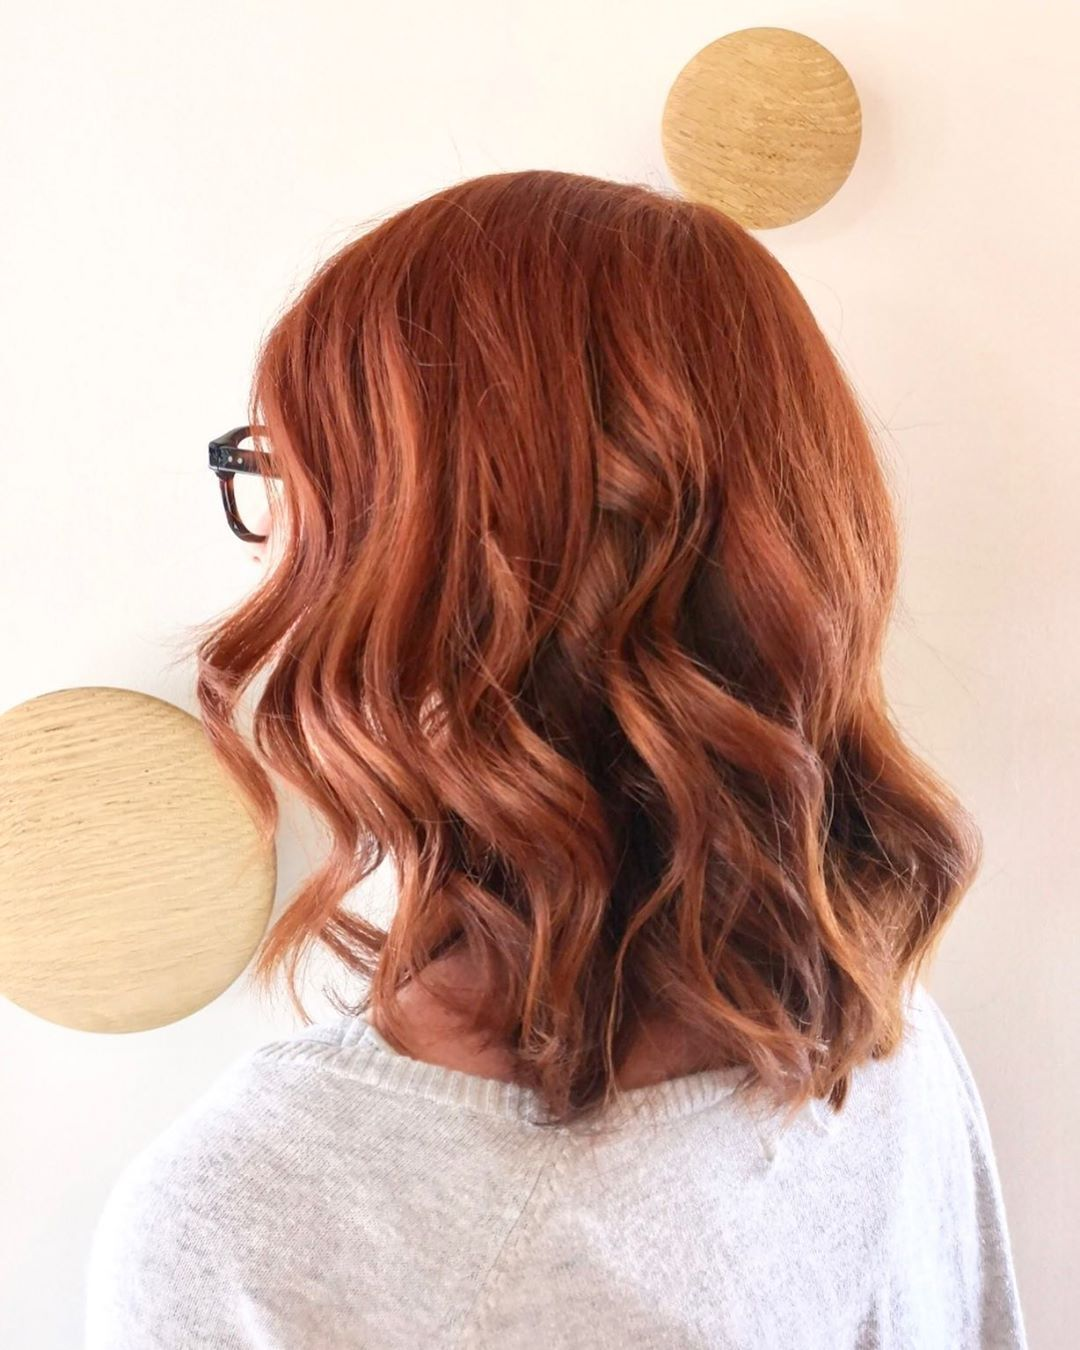 60 Short Red Hairstyles And New Trends In 2020 Short Red Hair Short Hair Styles Hair Styles